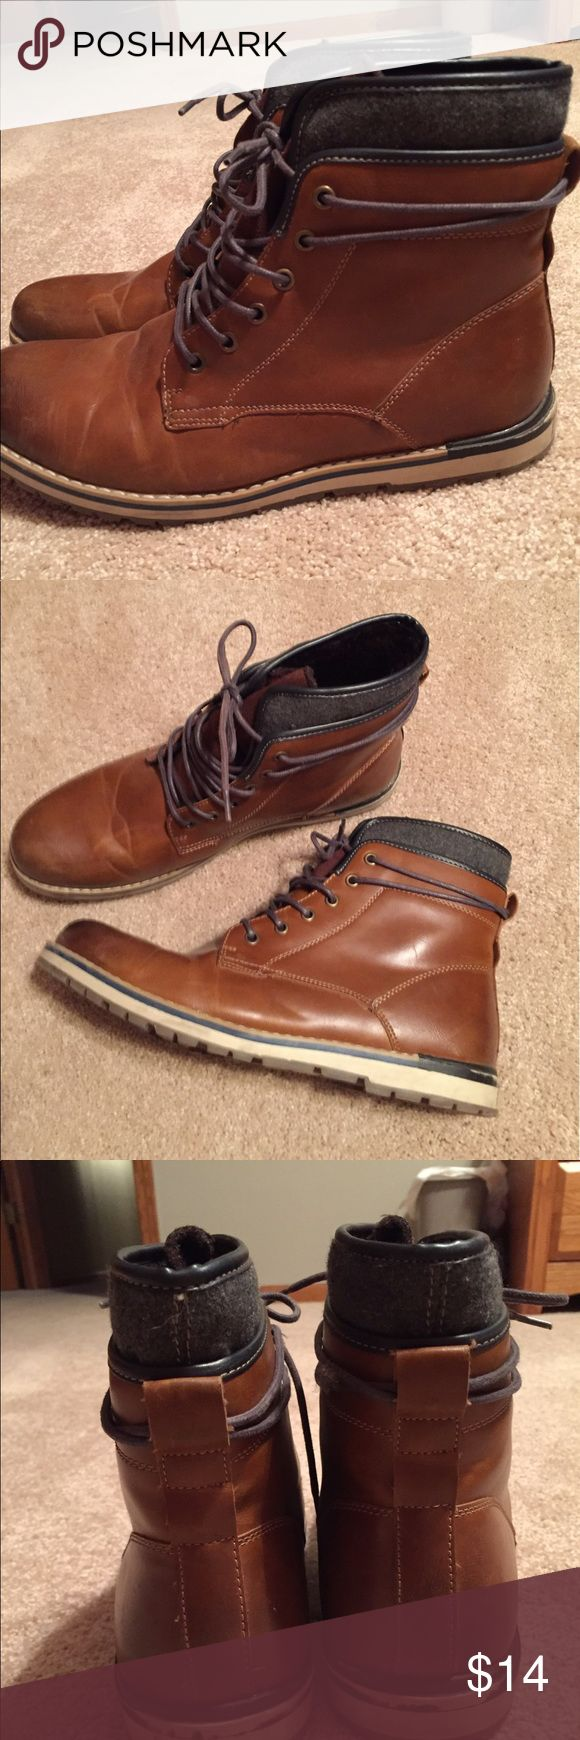 Men's brown boot/shoes Men's brown boot shoes with laces. Gently worn but in great condition. All scuffs are shown in photos. Worn under 5 times. Kohl's Shoes Boots